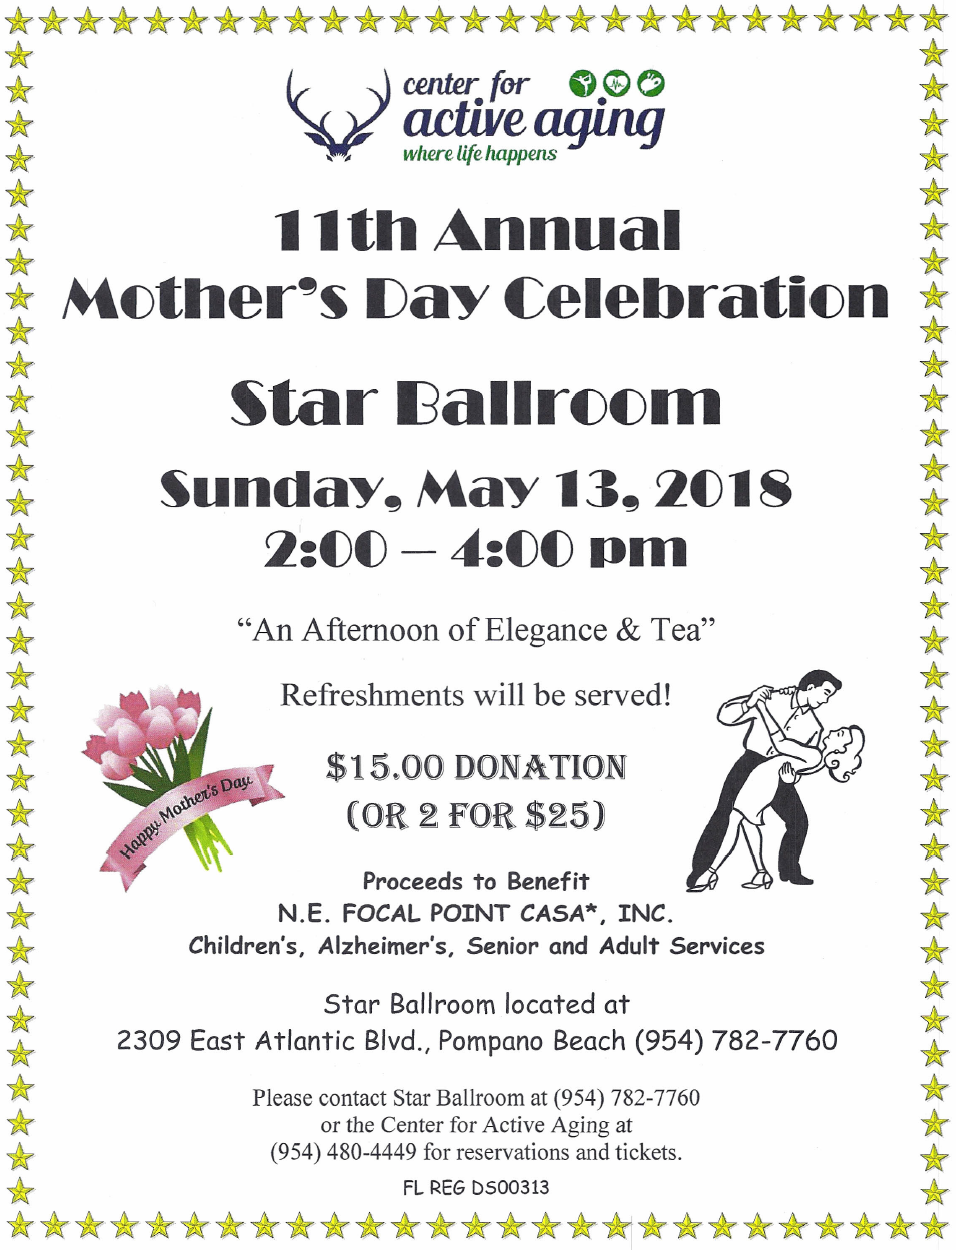 Mother's Day Celebration - Sunday, May 13, 2018 - Star Ballroom